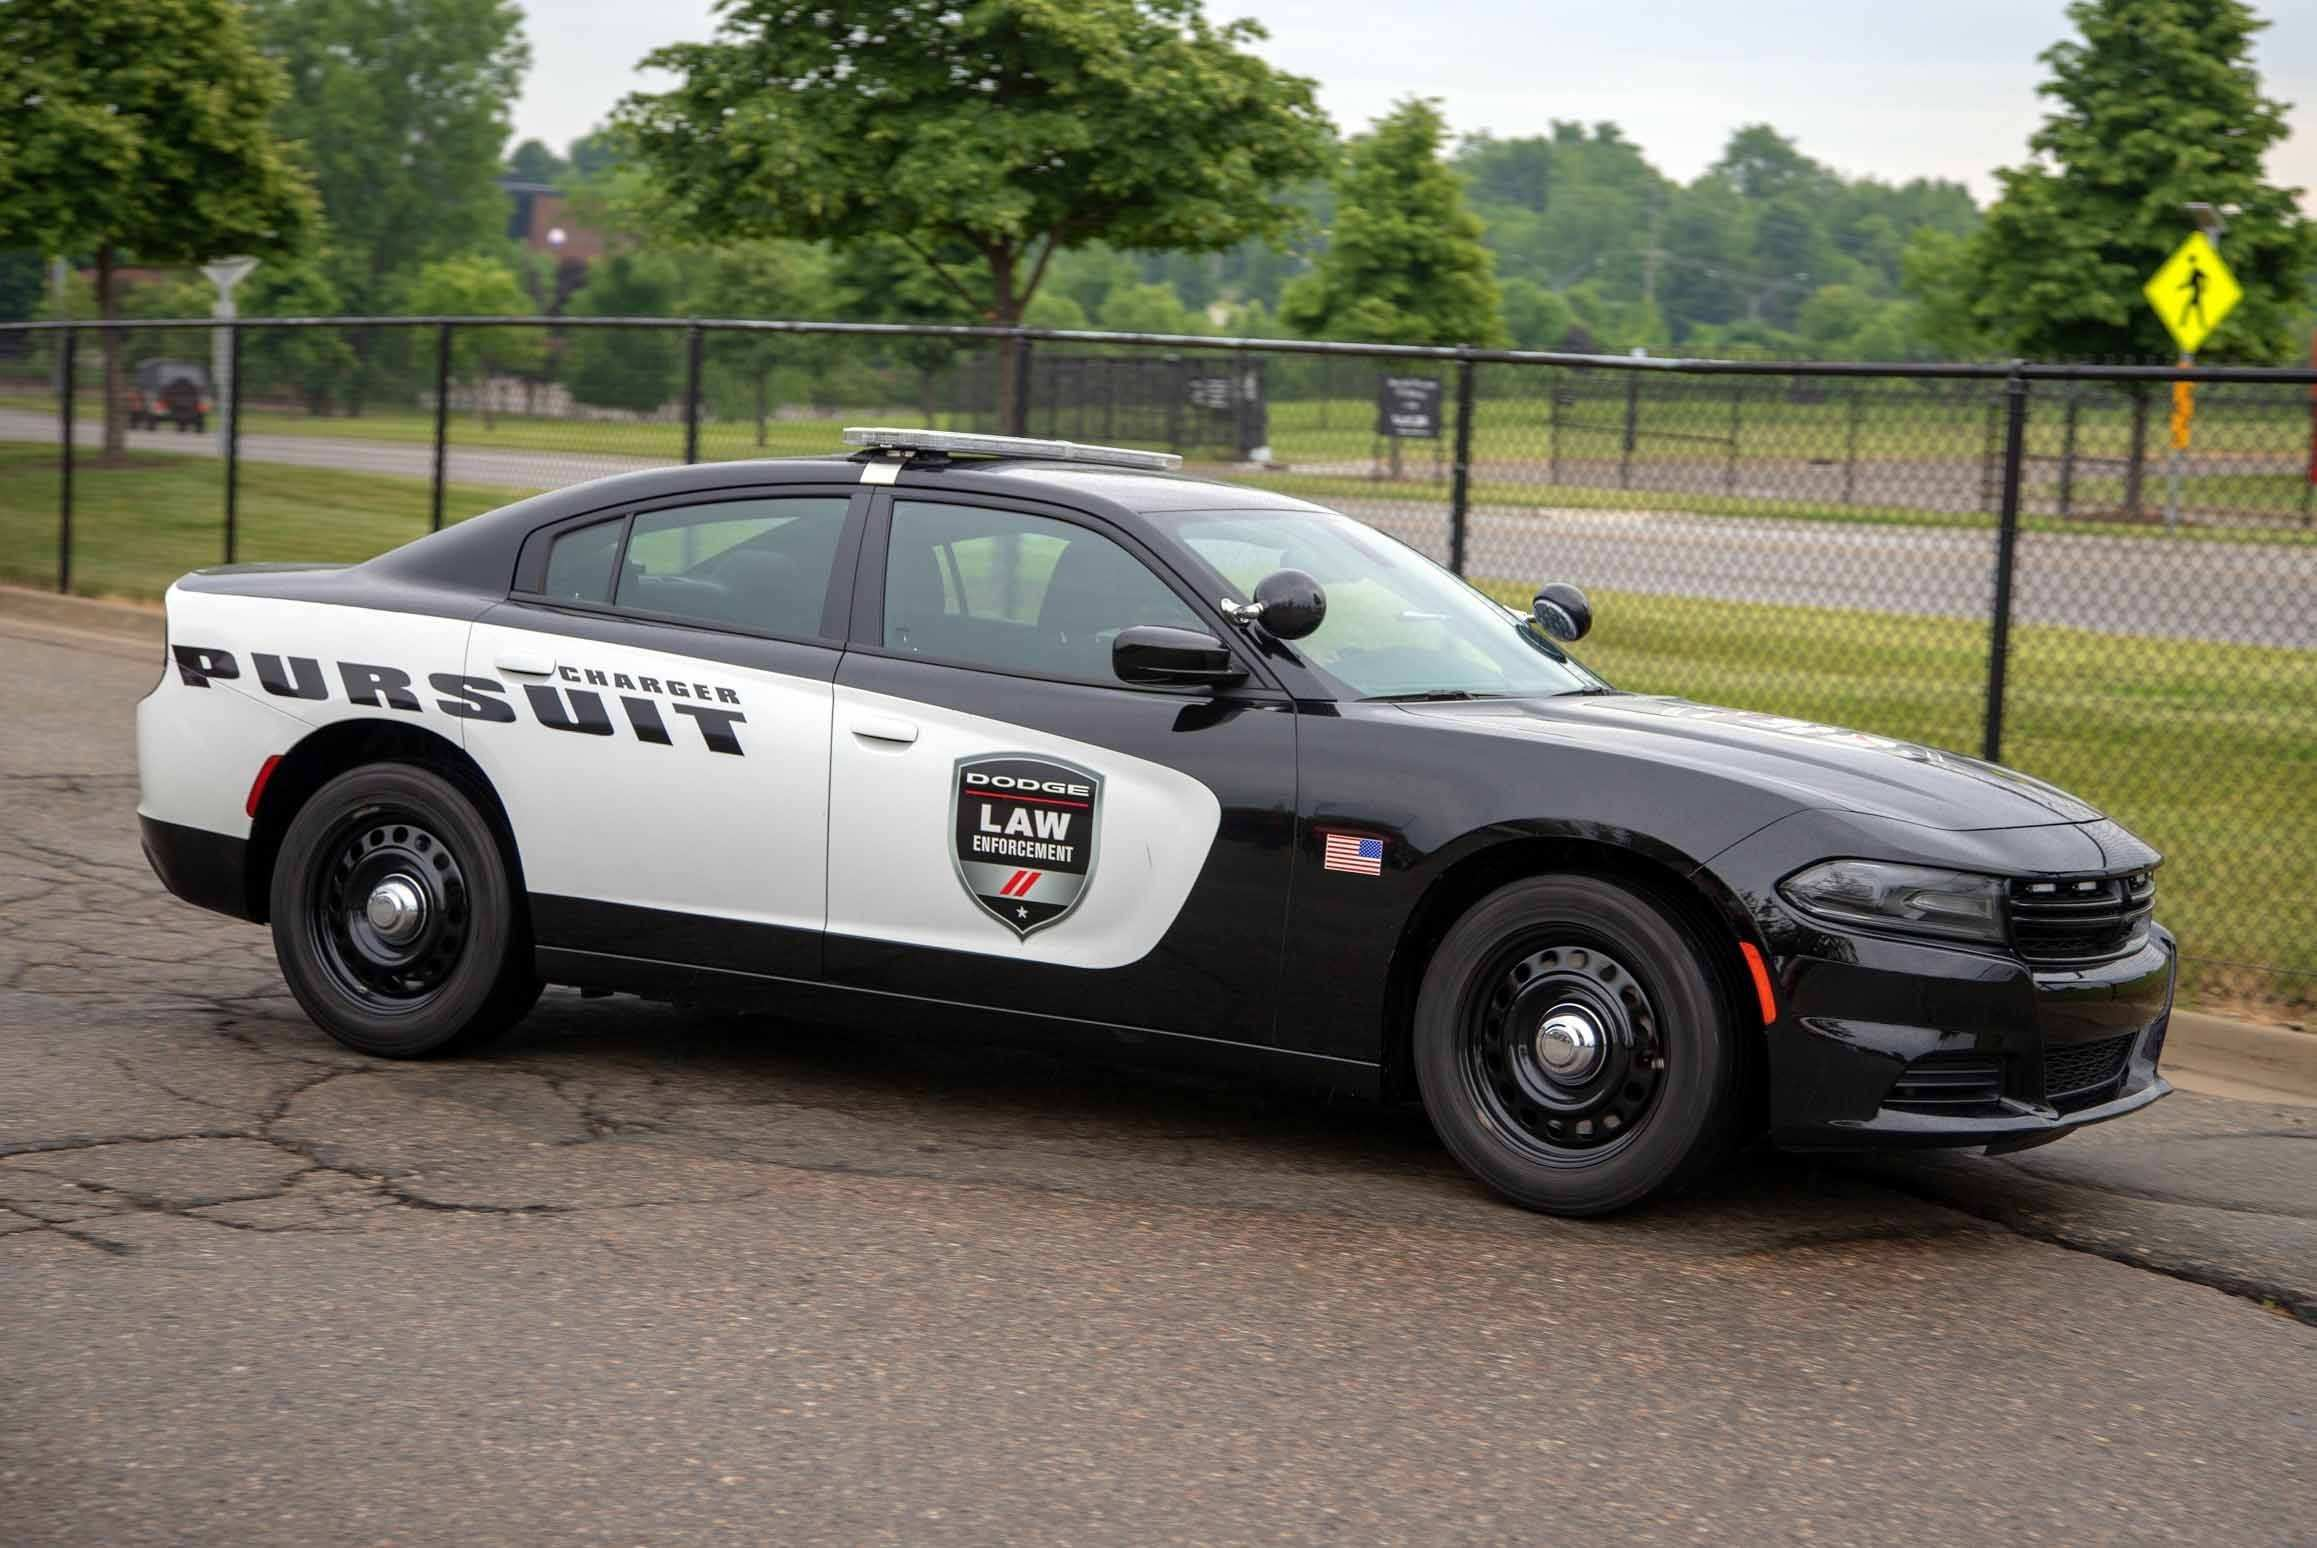 27 New 2020 Dodge Charger Police Performance